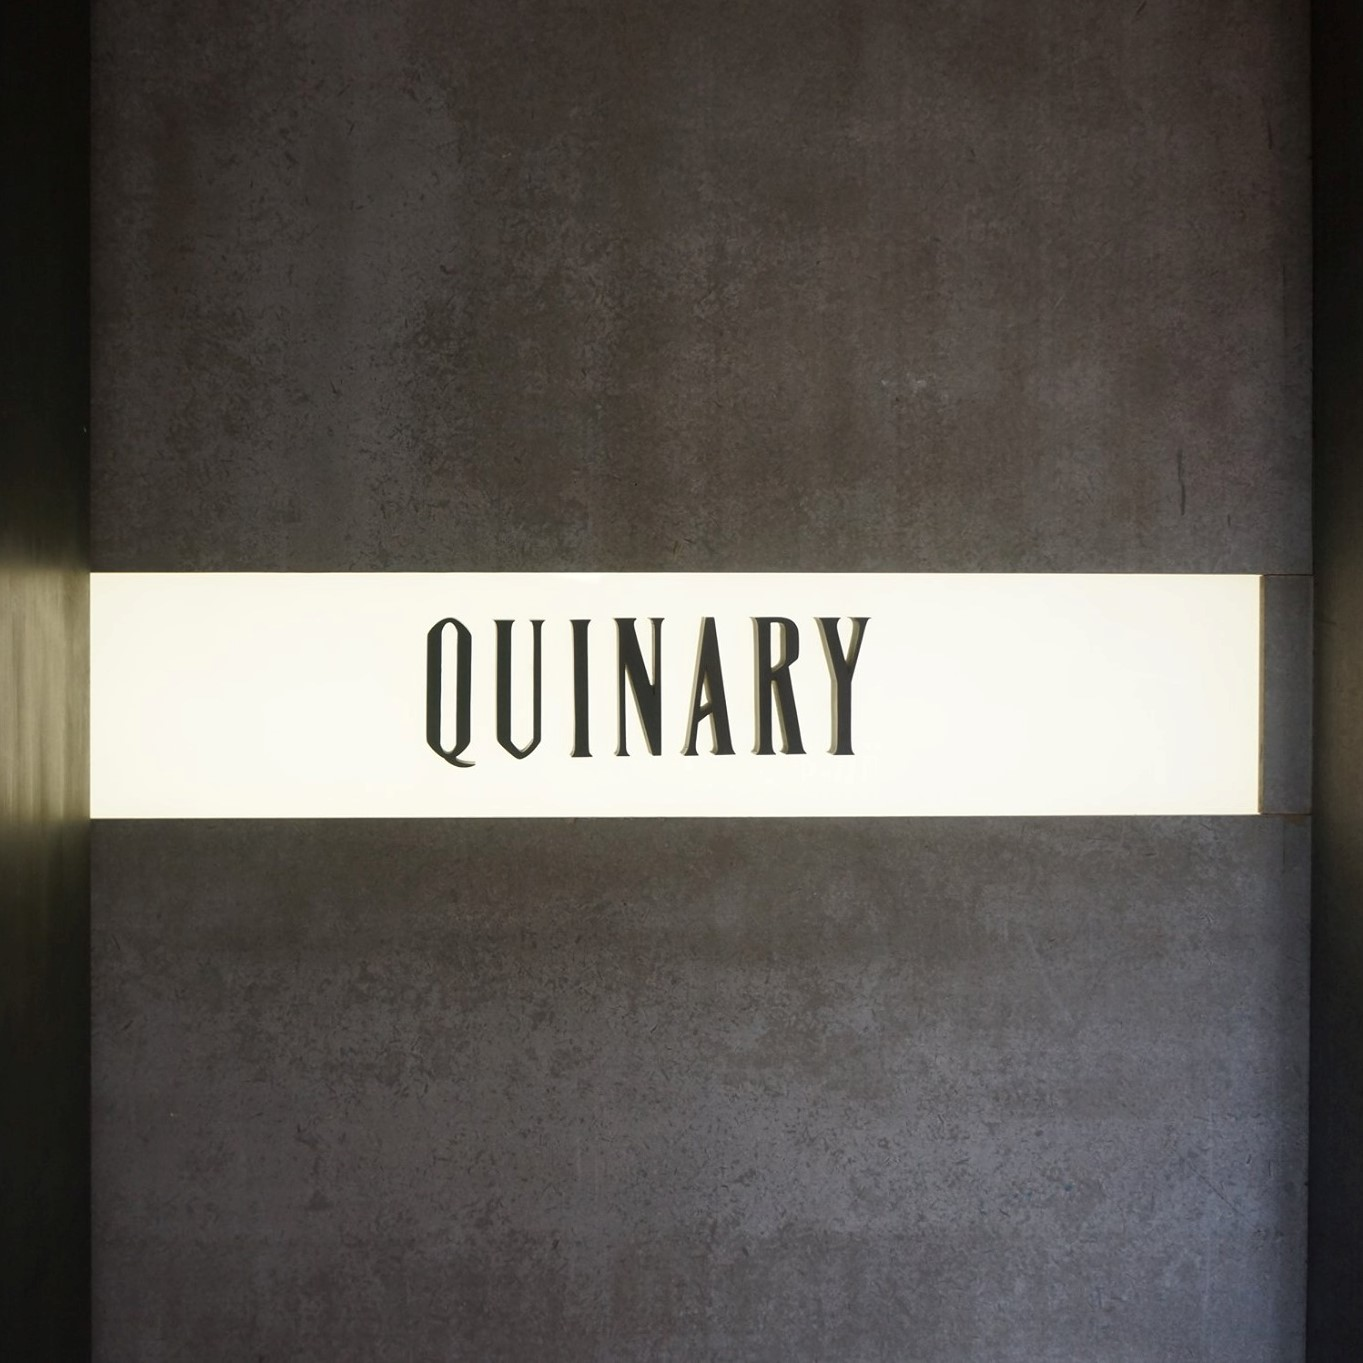 Quinary